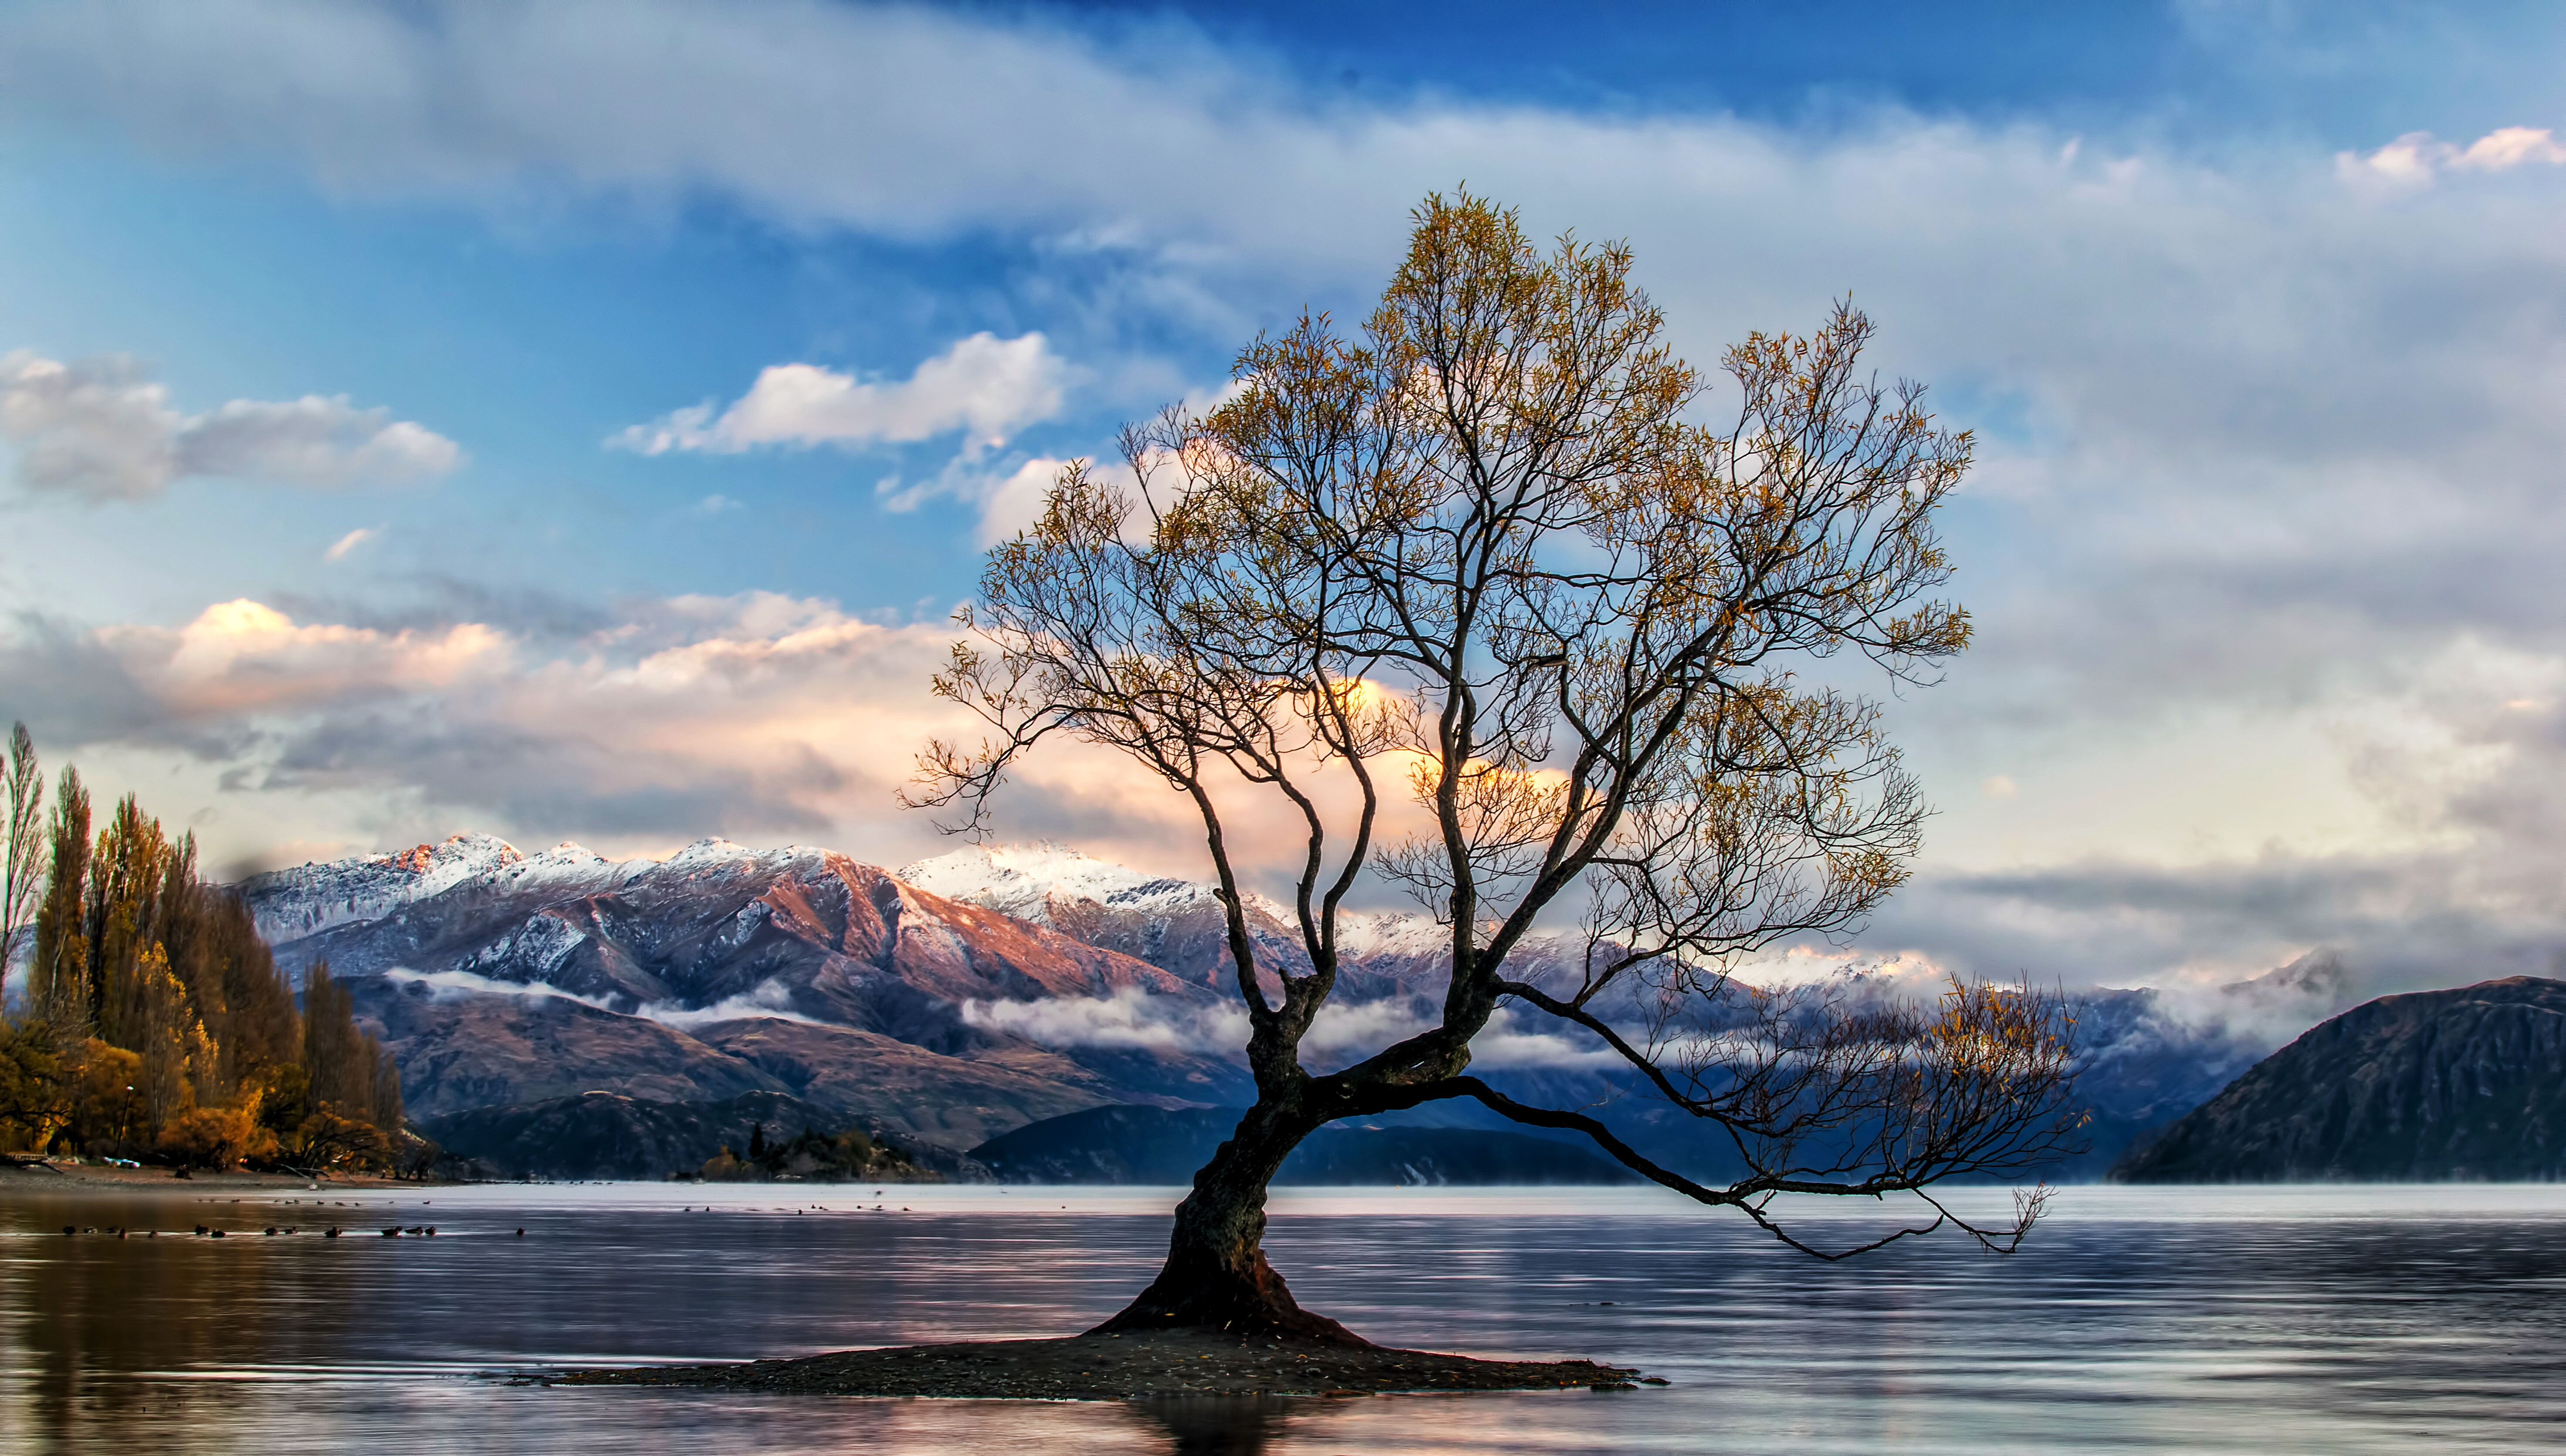 5120X2880 Lone Tree Lake Wanaka 5K Hd 4K Wallpapers, Images, Backgrounds, Photos And -2841